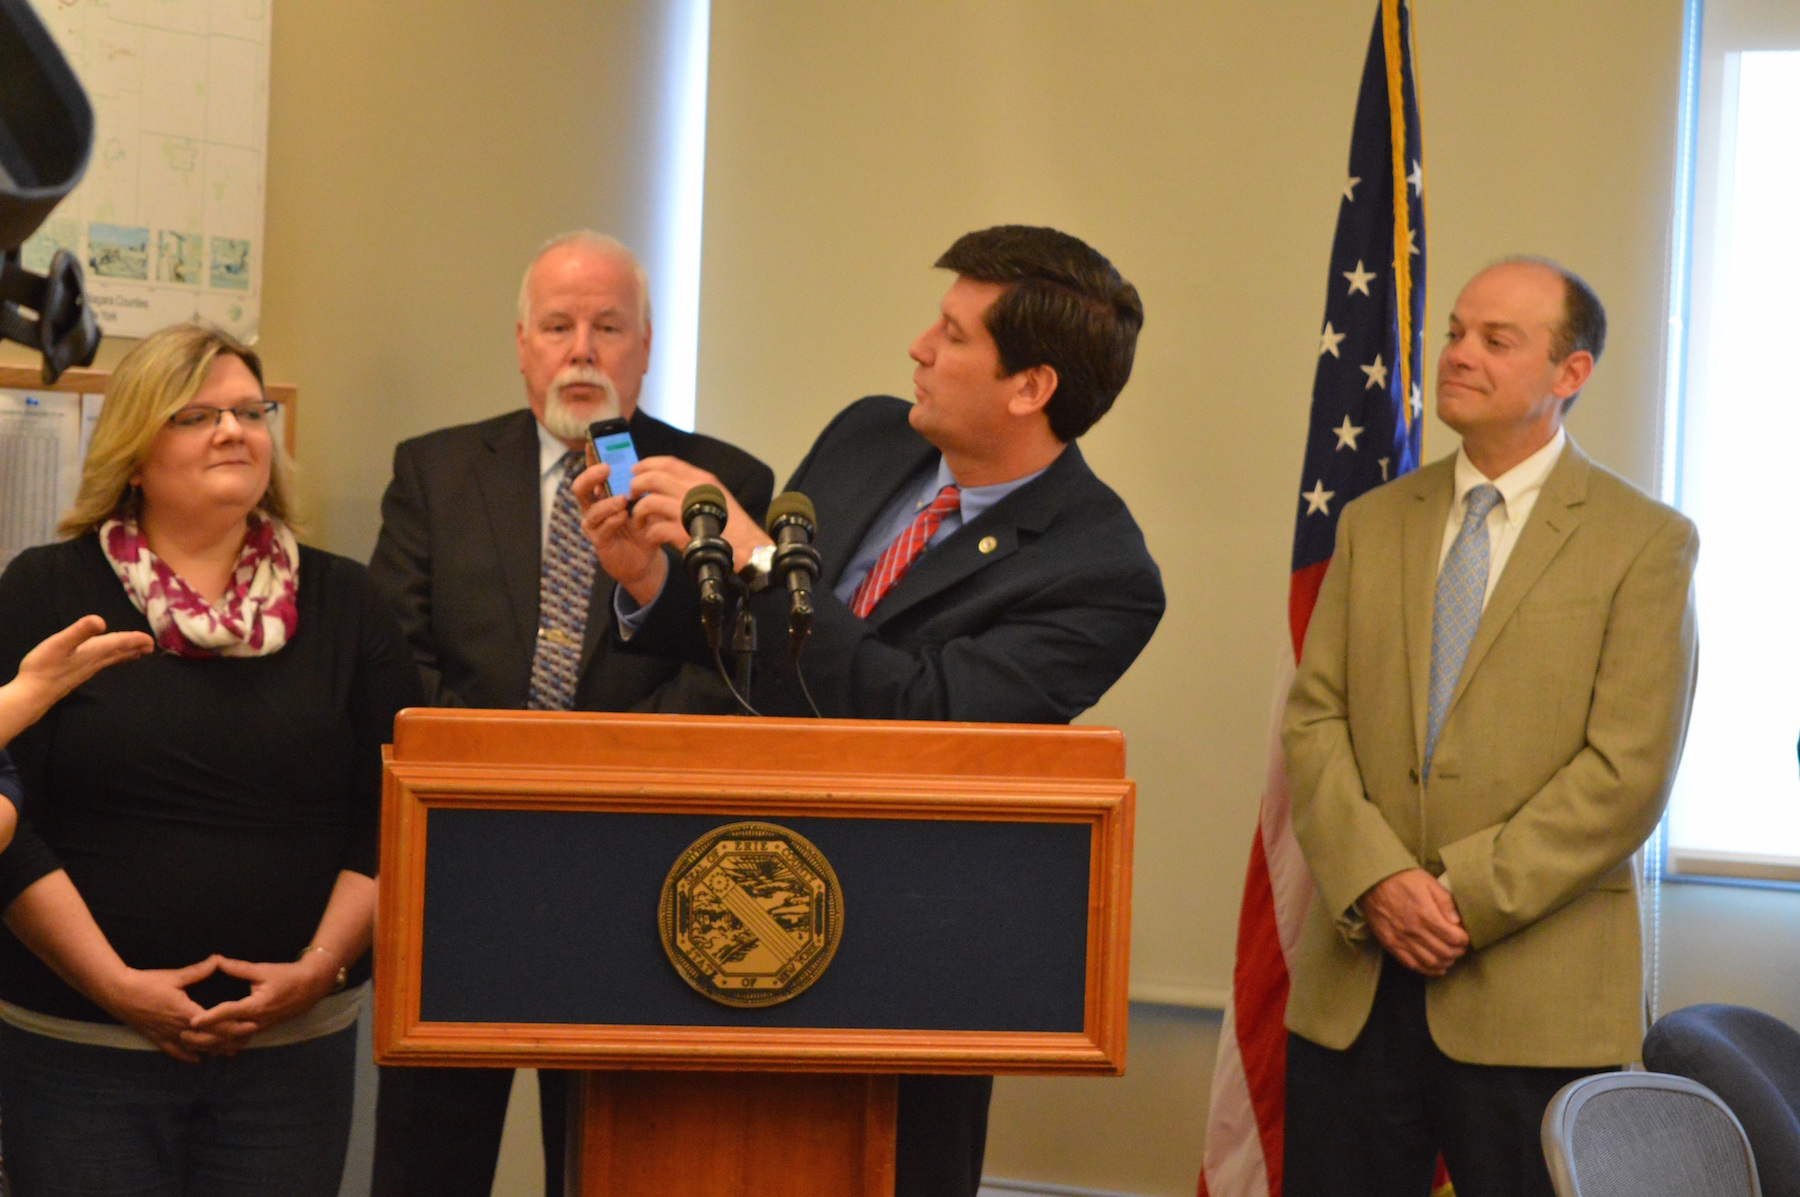 Erie County Executive Mark C. Poloncarz (at podium, with phone) sends the first official text to 9-1-1 in Erie County Wednesday. Looking on, from left, are Pamela Rohring, president emeritus of Deaf Access Services; Erie County Commissioner of Central Police Services John Glascott; and Executive Director of the Erie County Office for the Disabled Frank Cammarata.